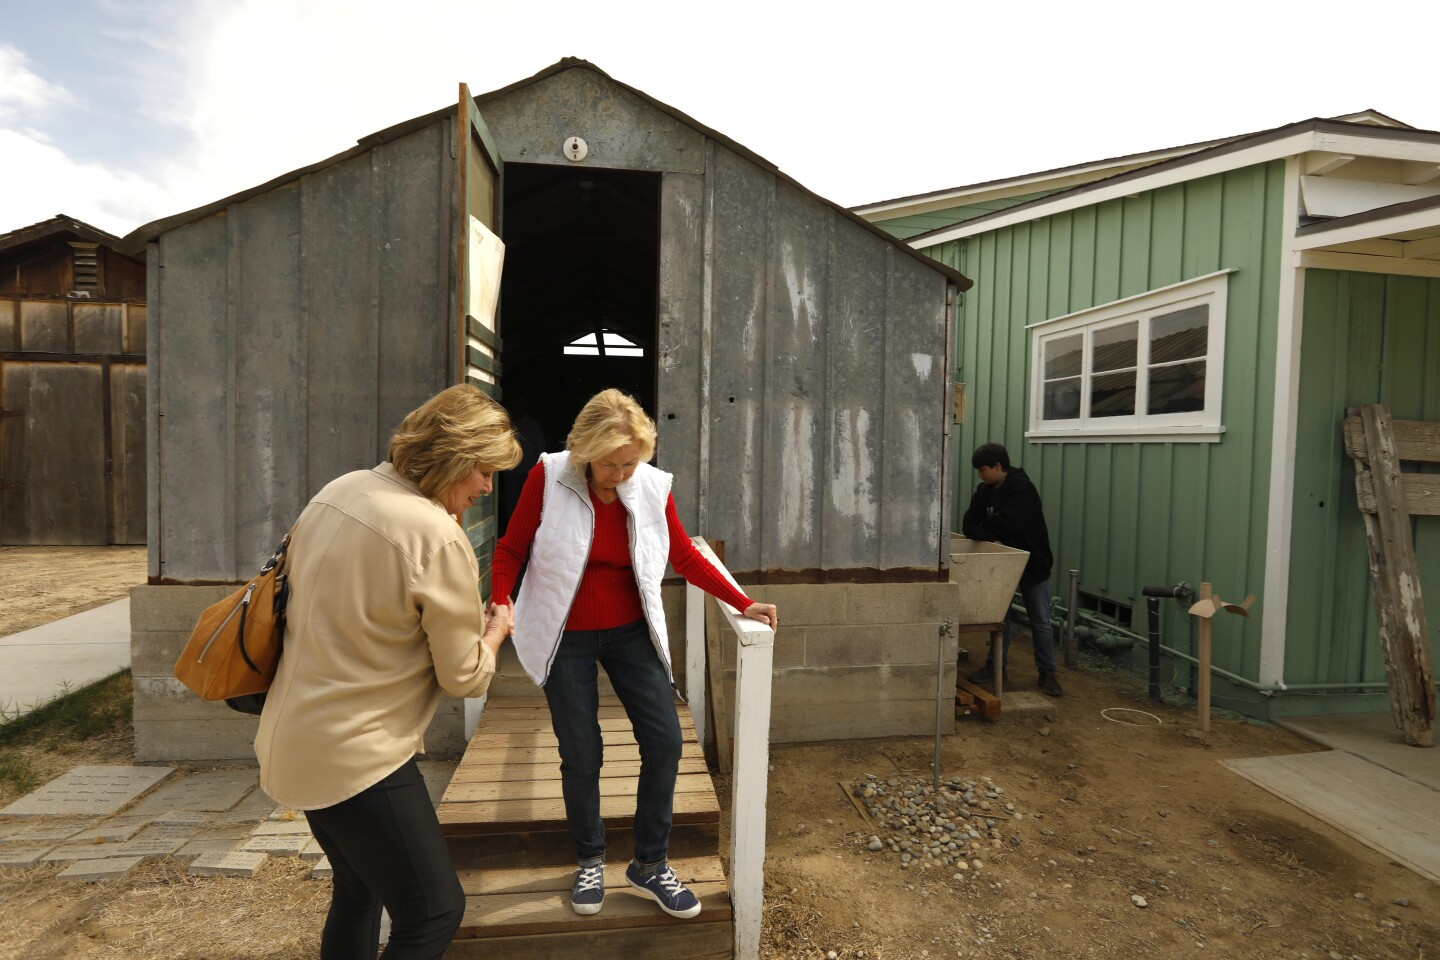 BAKERSFIELD, CA - OCTOBER 19, 2019 - - Pat Rush, 84, with the help of her daughter Angie Trigueiro, , exits one of the structures she and her family used to live in after migrating from Oklahoma to Bakersfield in 1945. Rush was revisiting the Weedpatch Camp with her daughter in Bakersfield on October 19, 2019. After three decades, the Dust Bowl Days festival at Weedpatch Camp, which housed Okies and migrant workers during the Dust Bowl, is ending its run. The final festival celebrates Okie history. (Genaro Molina / Los Angeles Times)